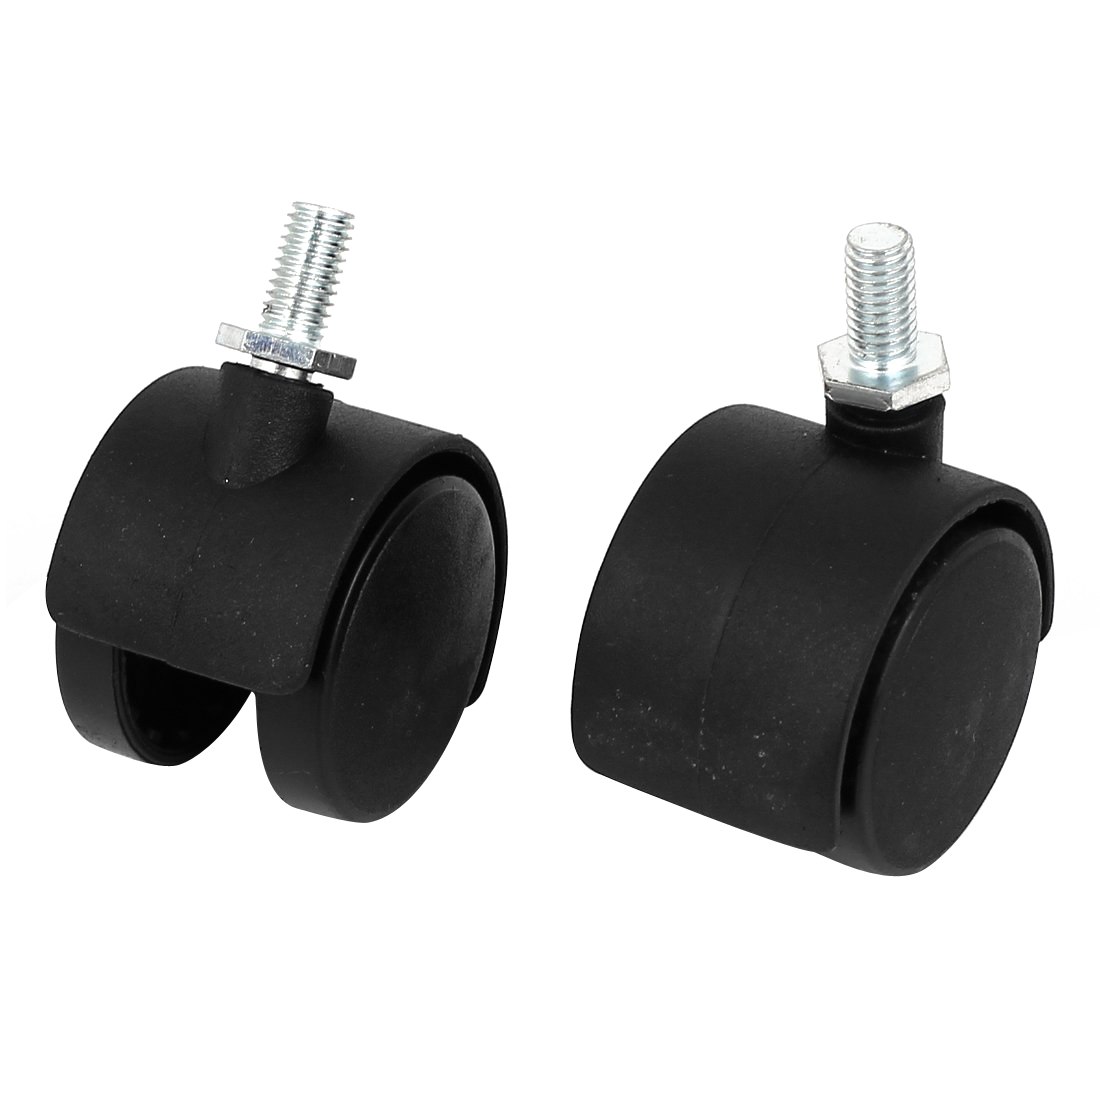 8mm Threaded Stem 1.5 Inch Dia Wheel Chair Swivel Caster 2 Pcs Black8mm Threaded Stem 1.5 Inch Dia Wheel Chair Swivel Caster 2 Pcs Black